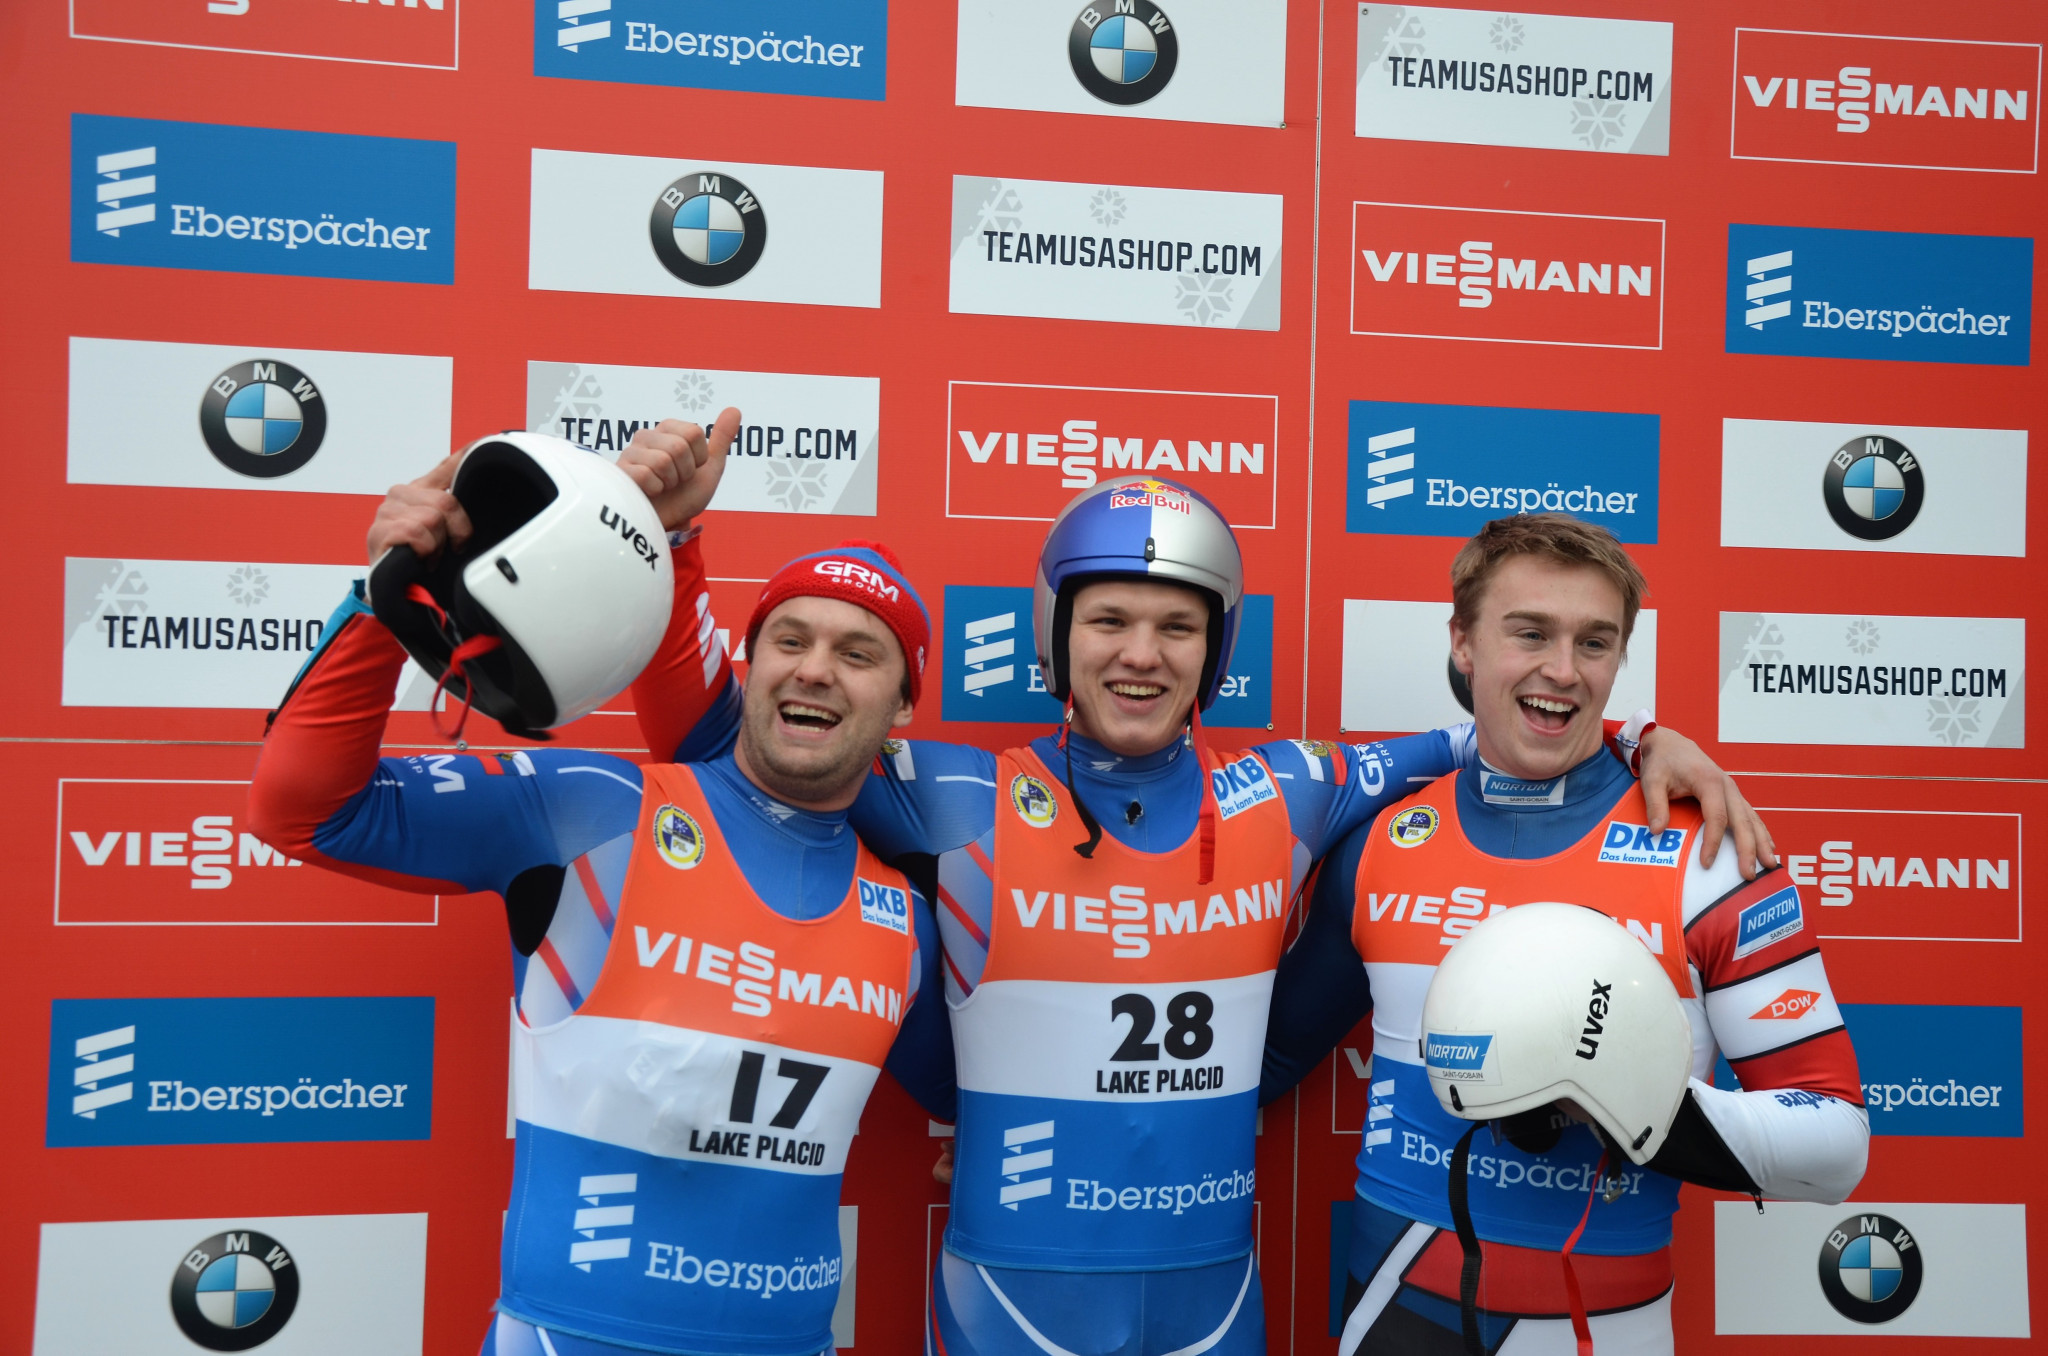 Roman Repilov, centre, recorded a record time on his way to victory in Lake Placid ©FIL